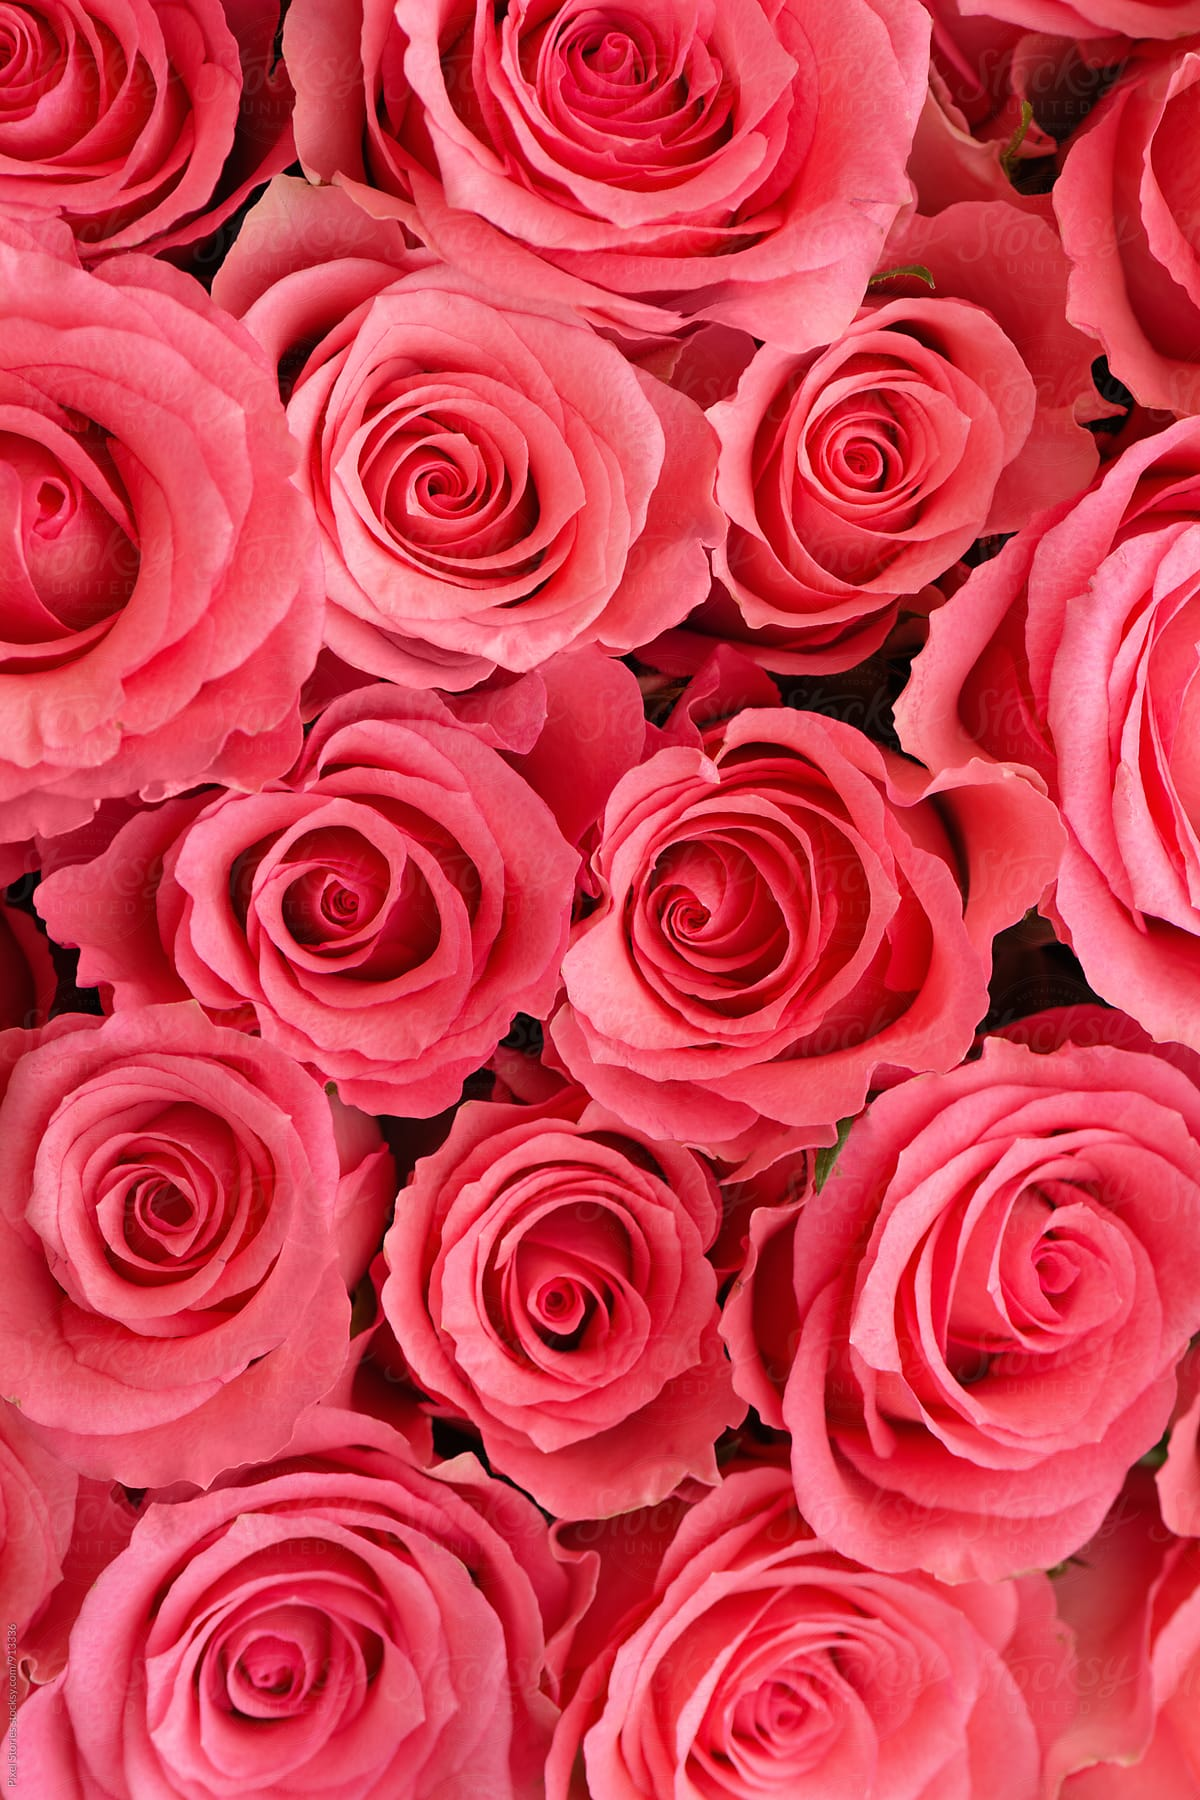 Pink Roses Background Stocksy United